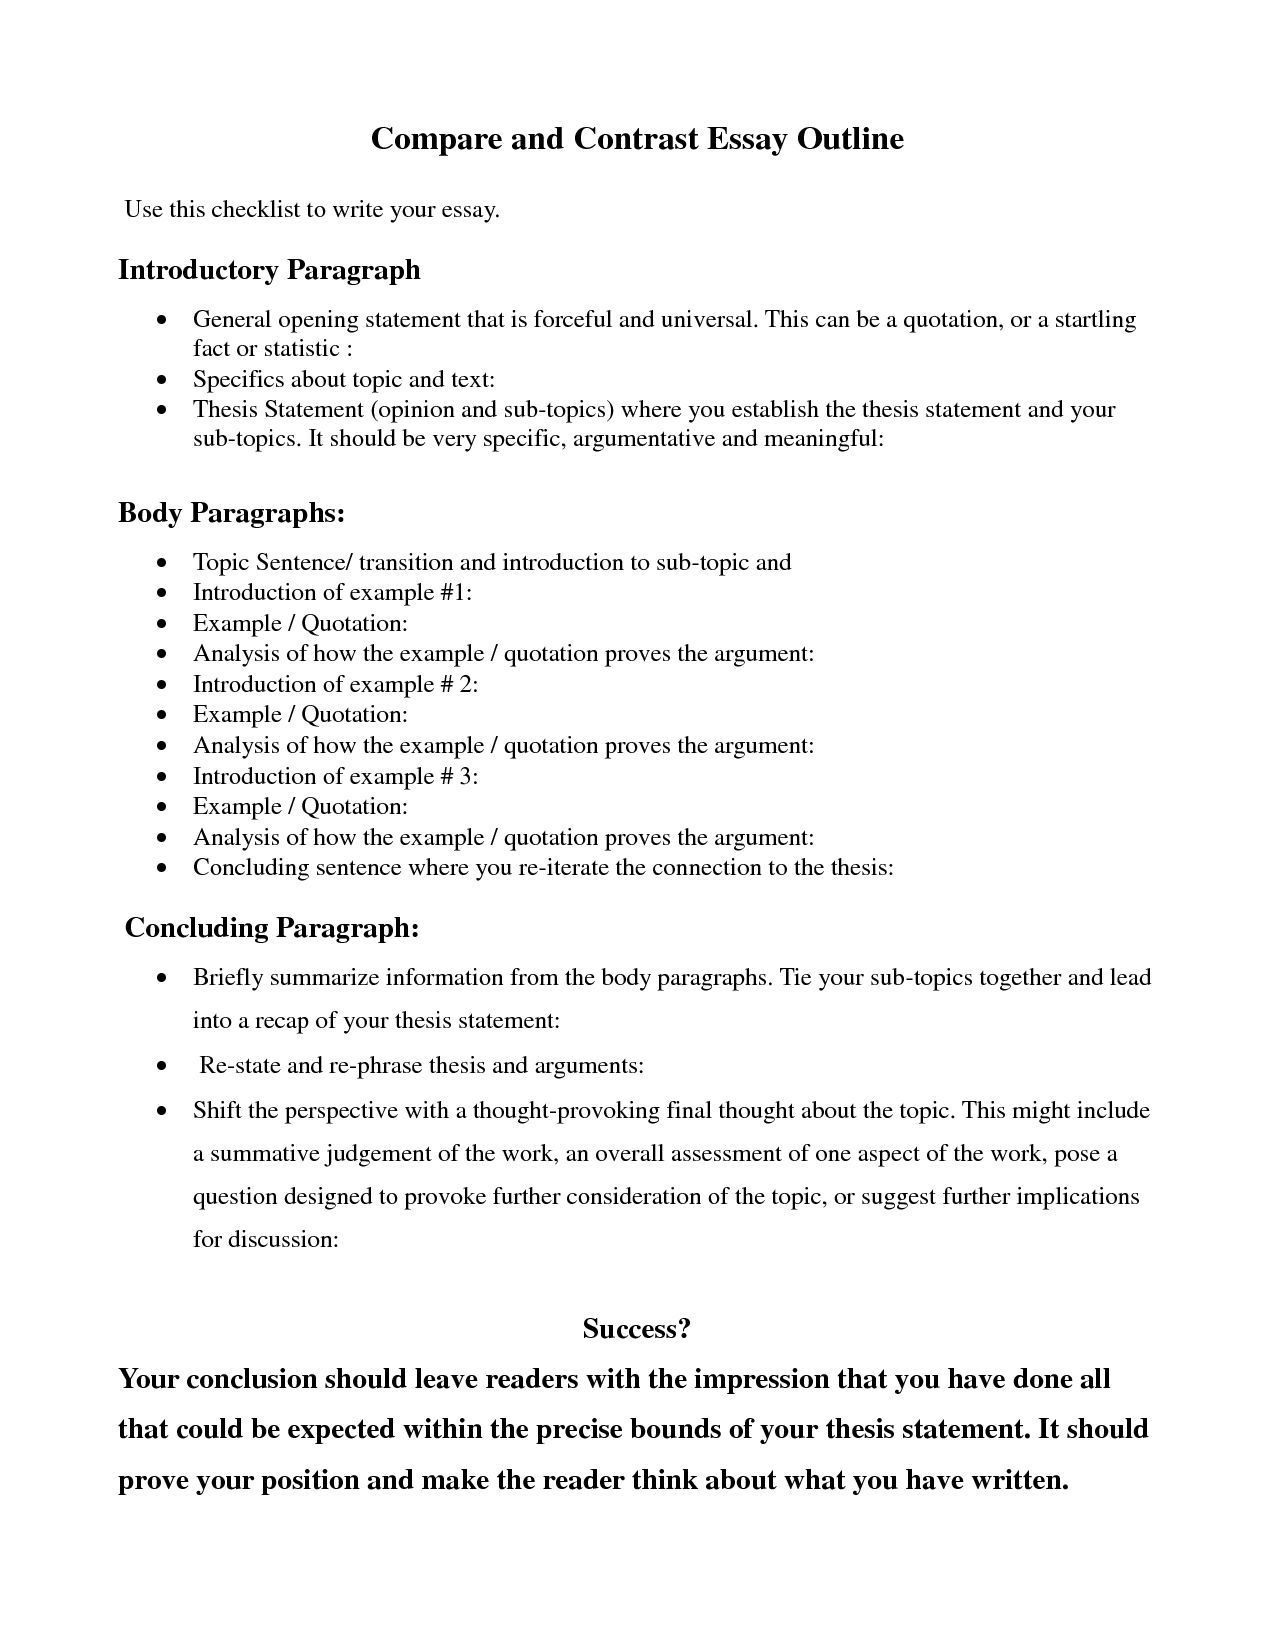 Thesis Statement Outline Examples | Essay Outline, Thesis Statement, Essay  Questions